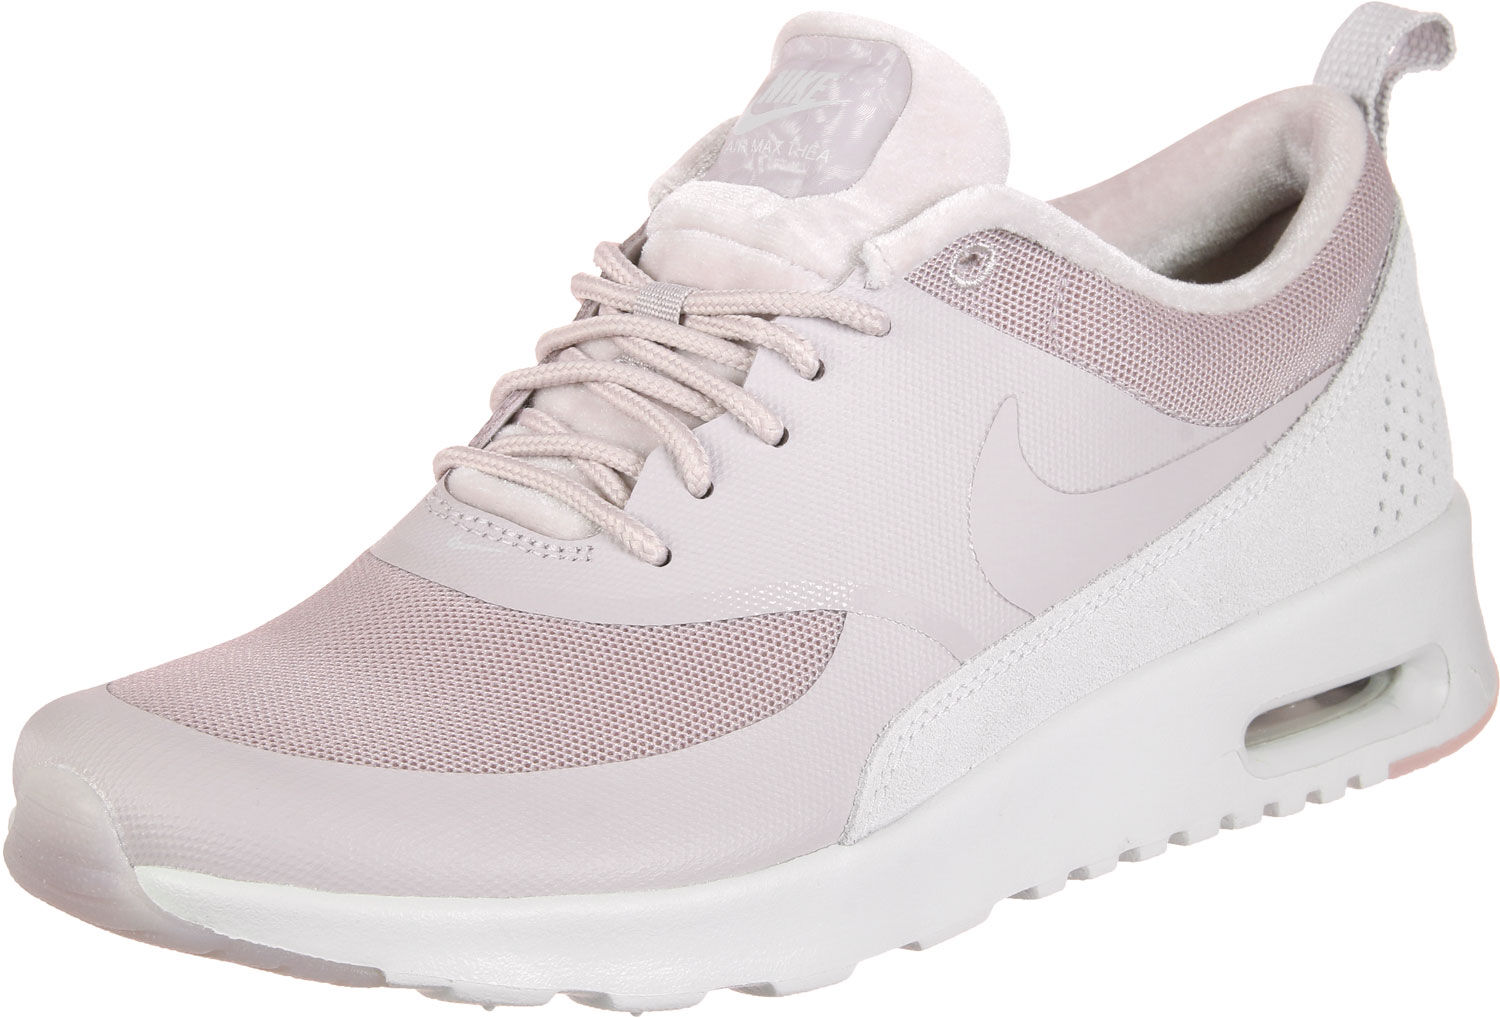 Air Max Thea LX W Baskets low Femmes chez Stylefile